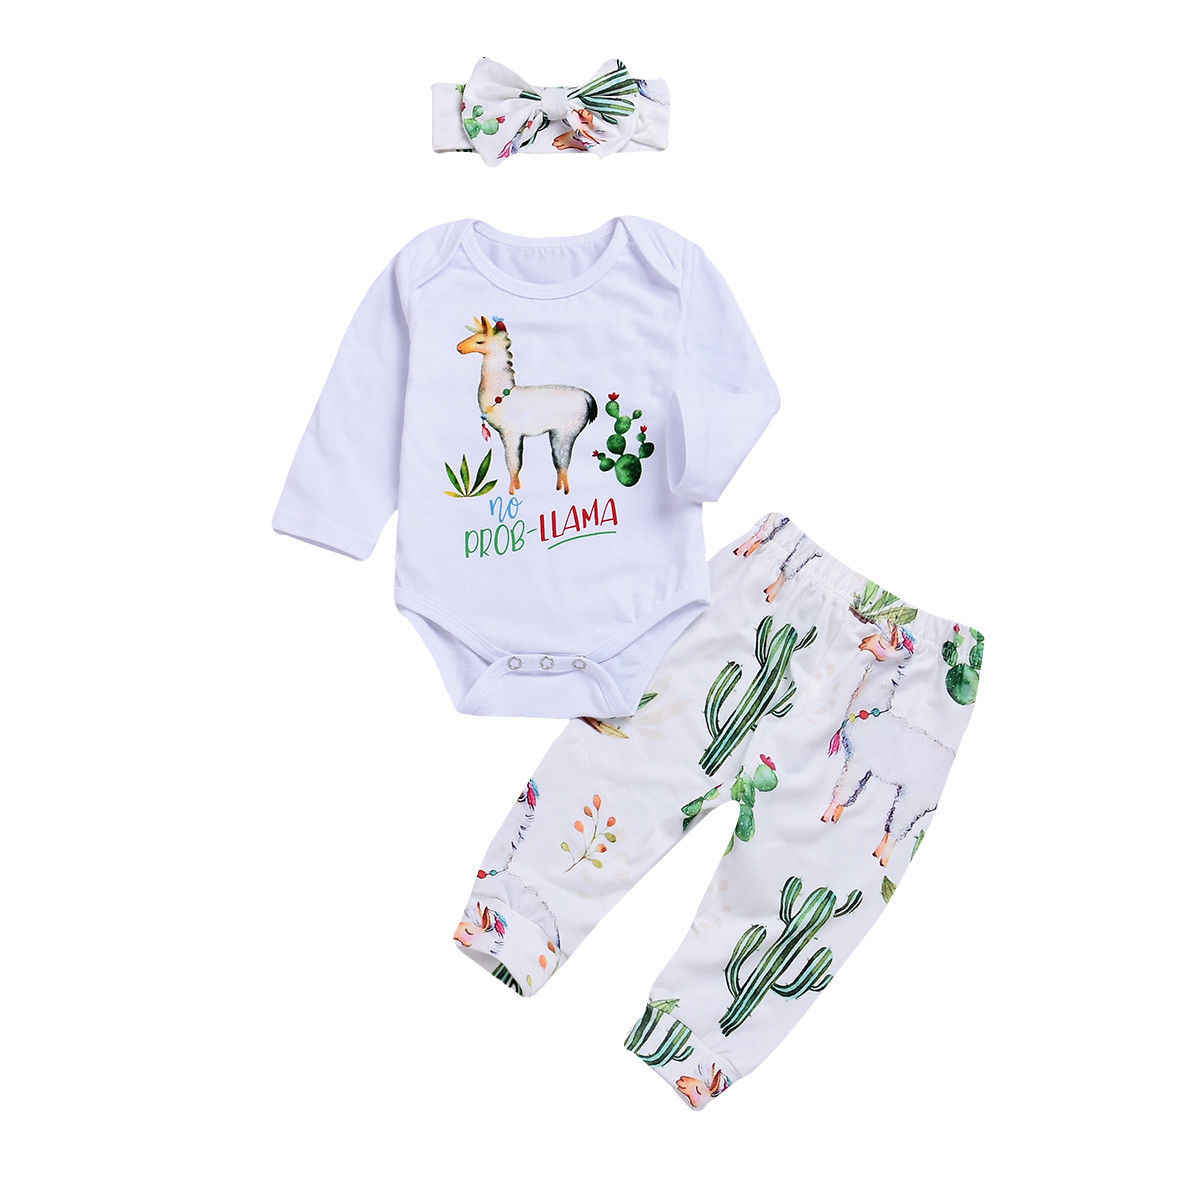 46a666360 Detail Feedback Questions about Newborn Baby Autumn Winter Clothing ...